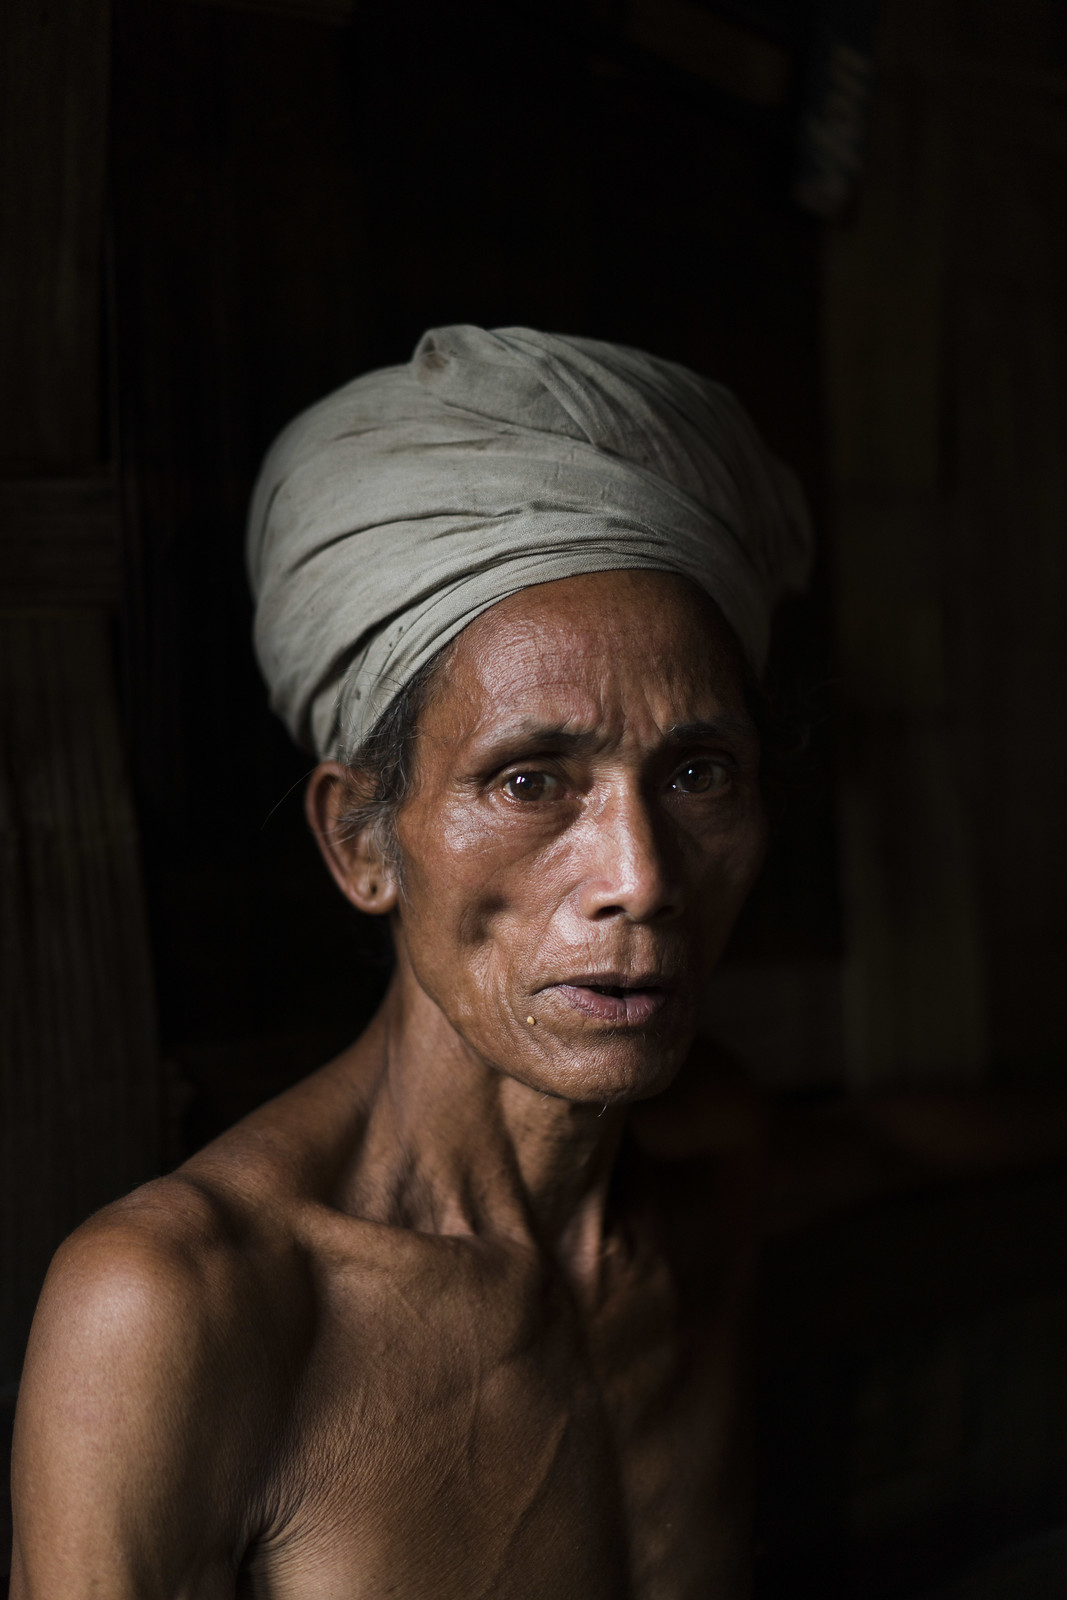 A portrait from Bandorban